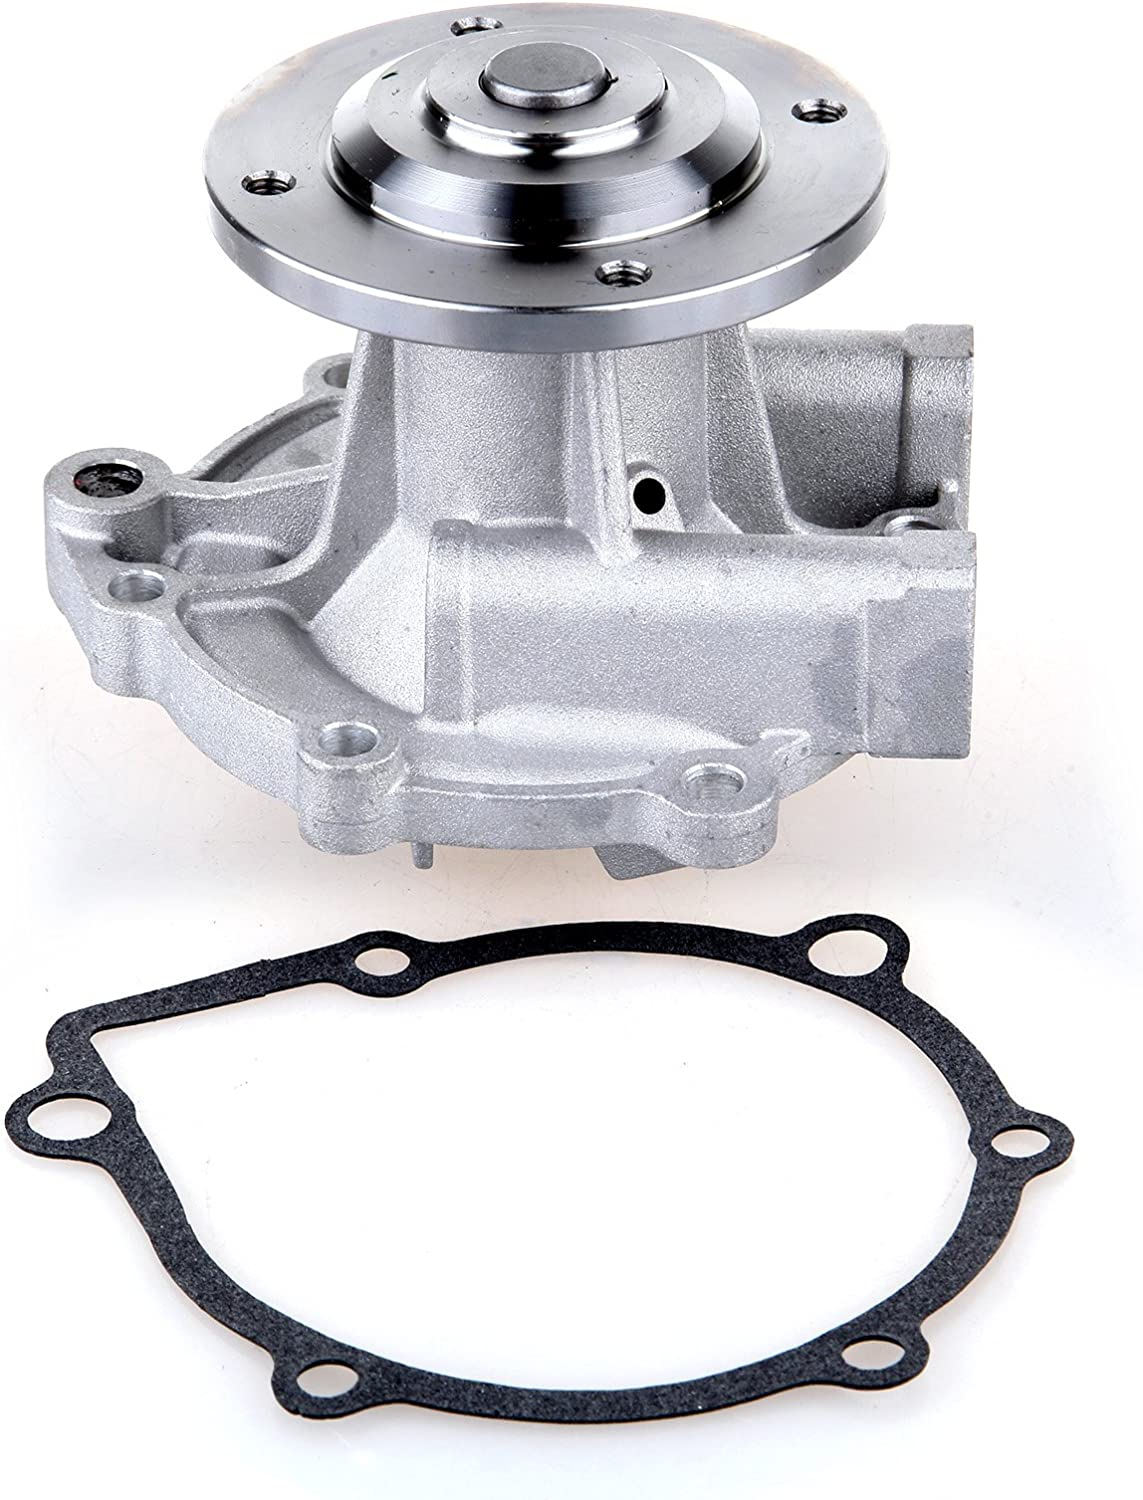 SCITOO Water Pump with Gasket fits for 2003 57-1526 Genuine Free Shipping Che 1999 Free Shipping Cheap Bargain Gift